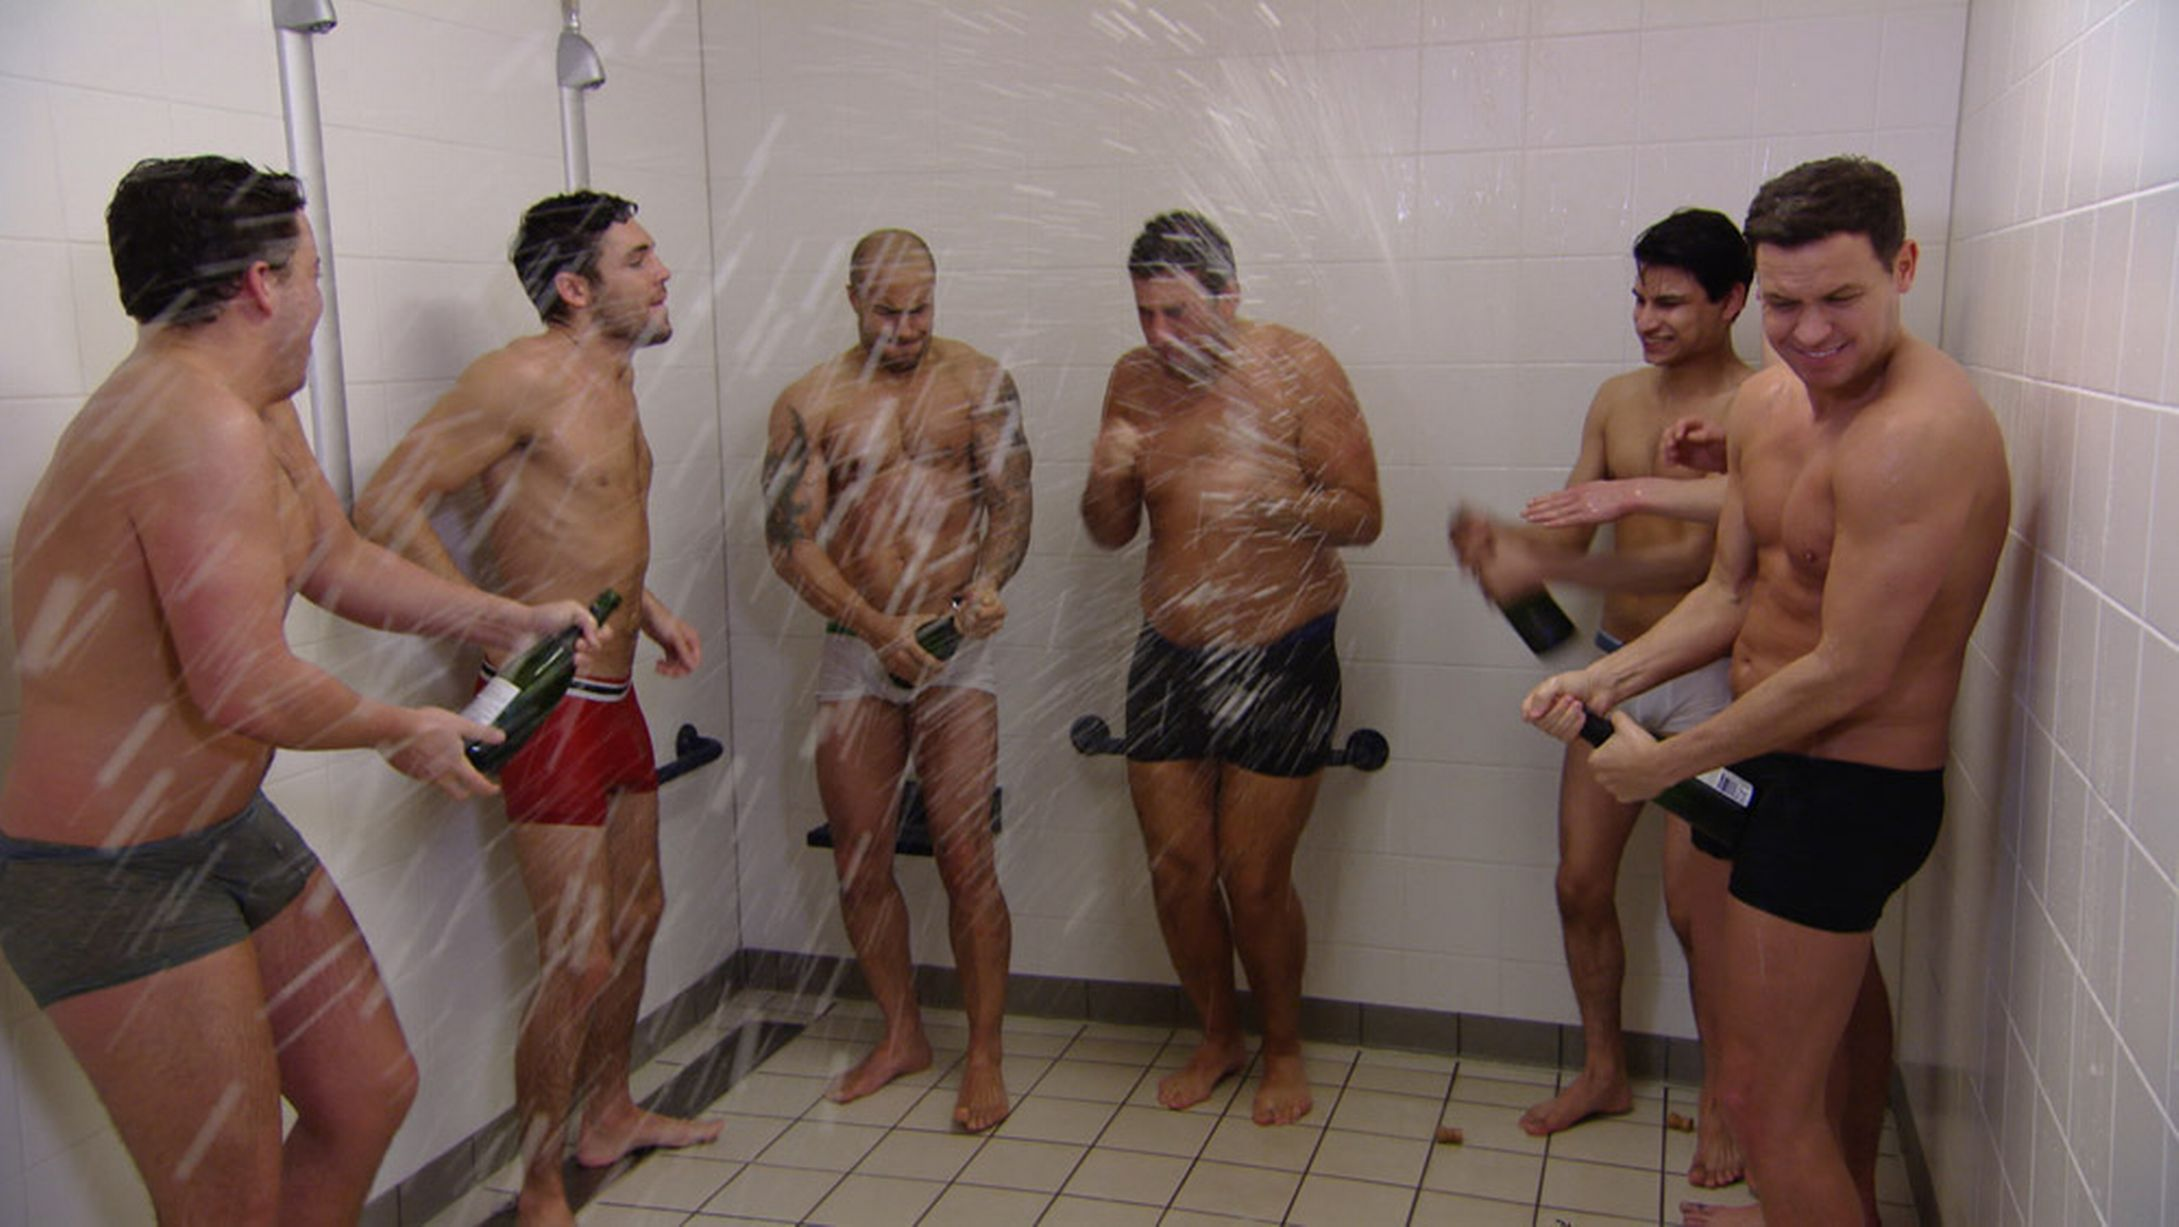 from Robin gay men showers